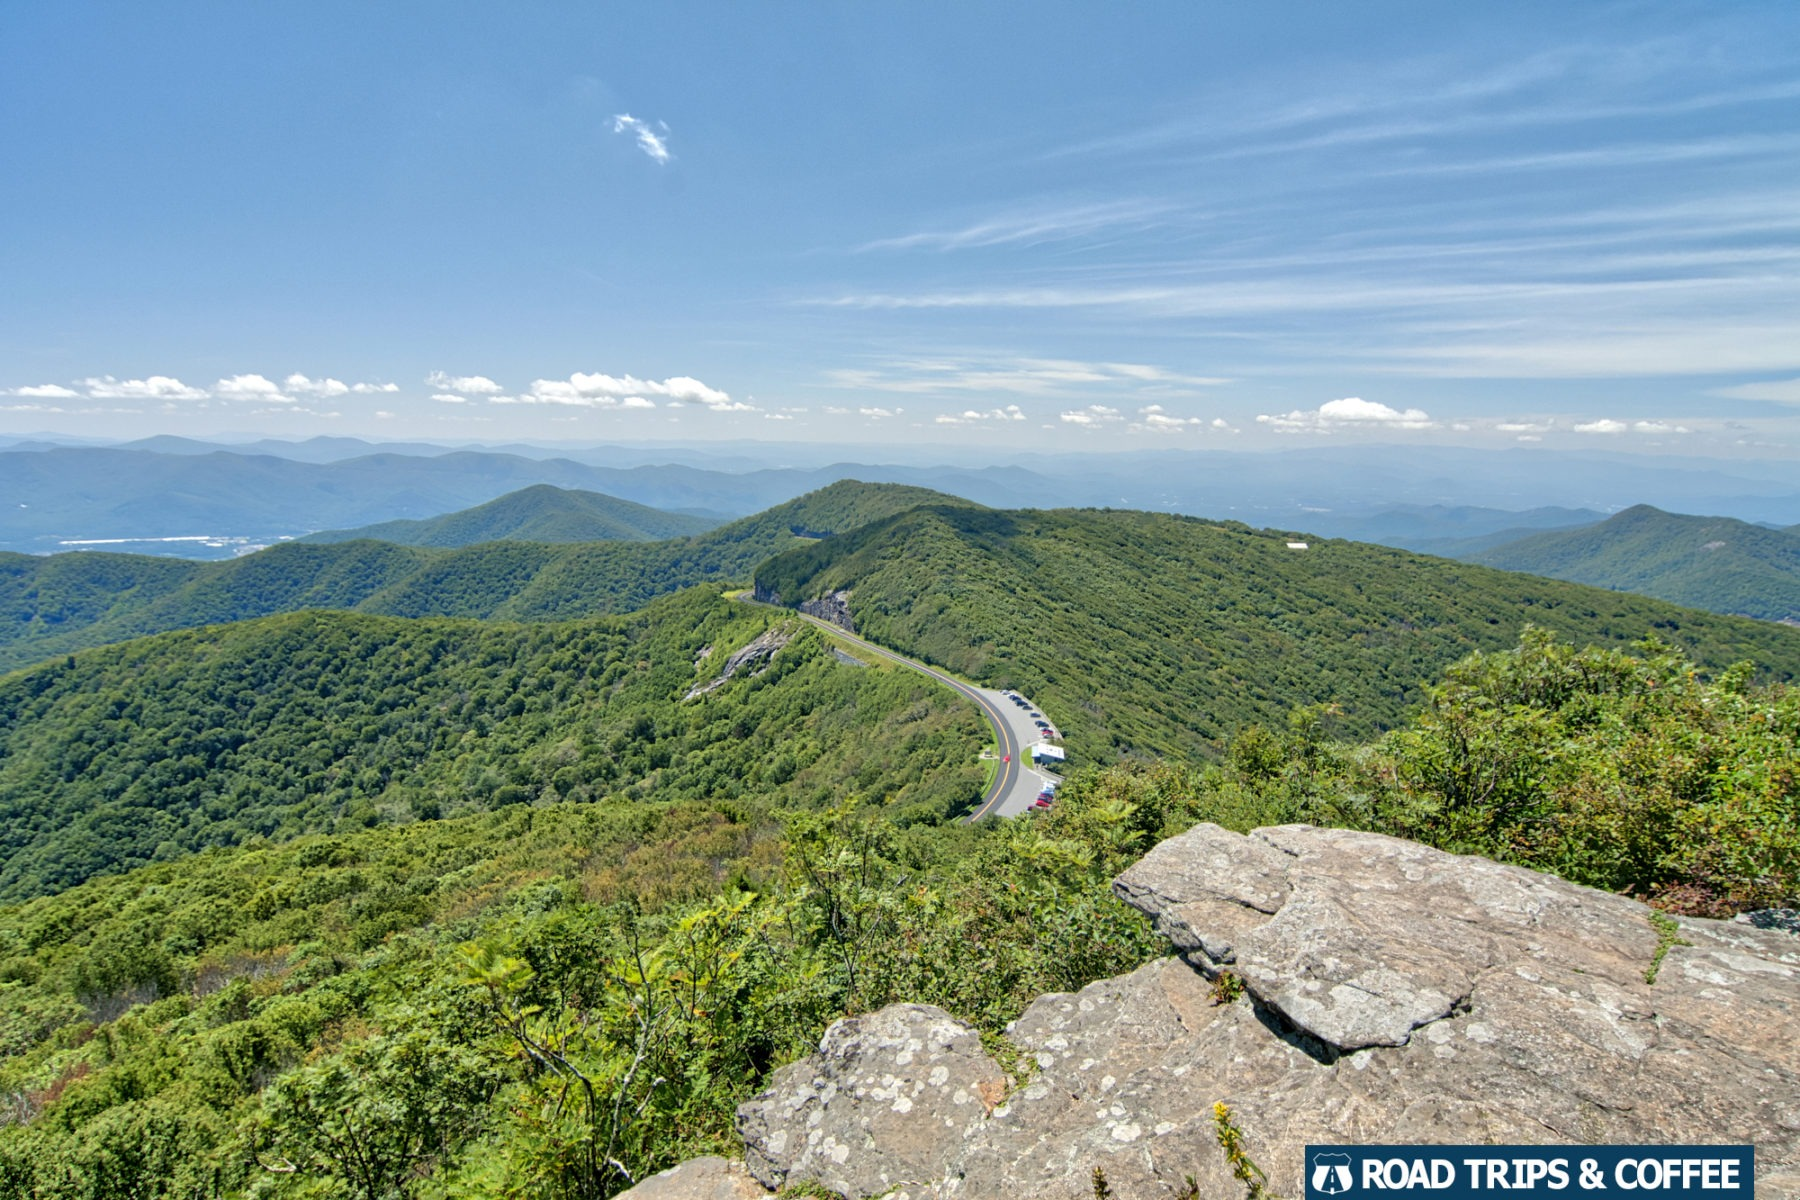 View of local mountains and the trailing road in the distance at Craggy Pinnacle on the Blue Ridge Parkway in North Carolina